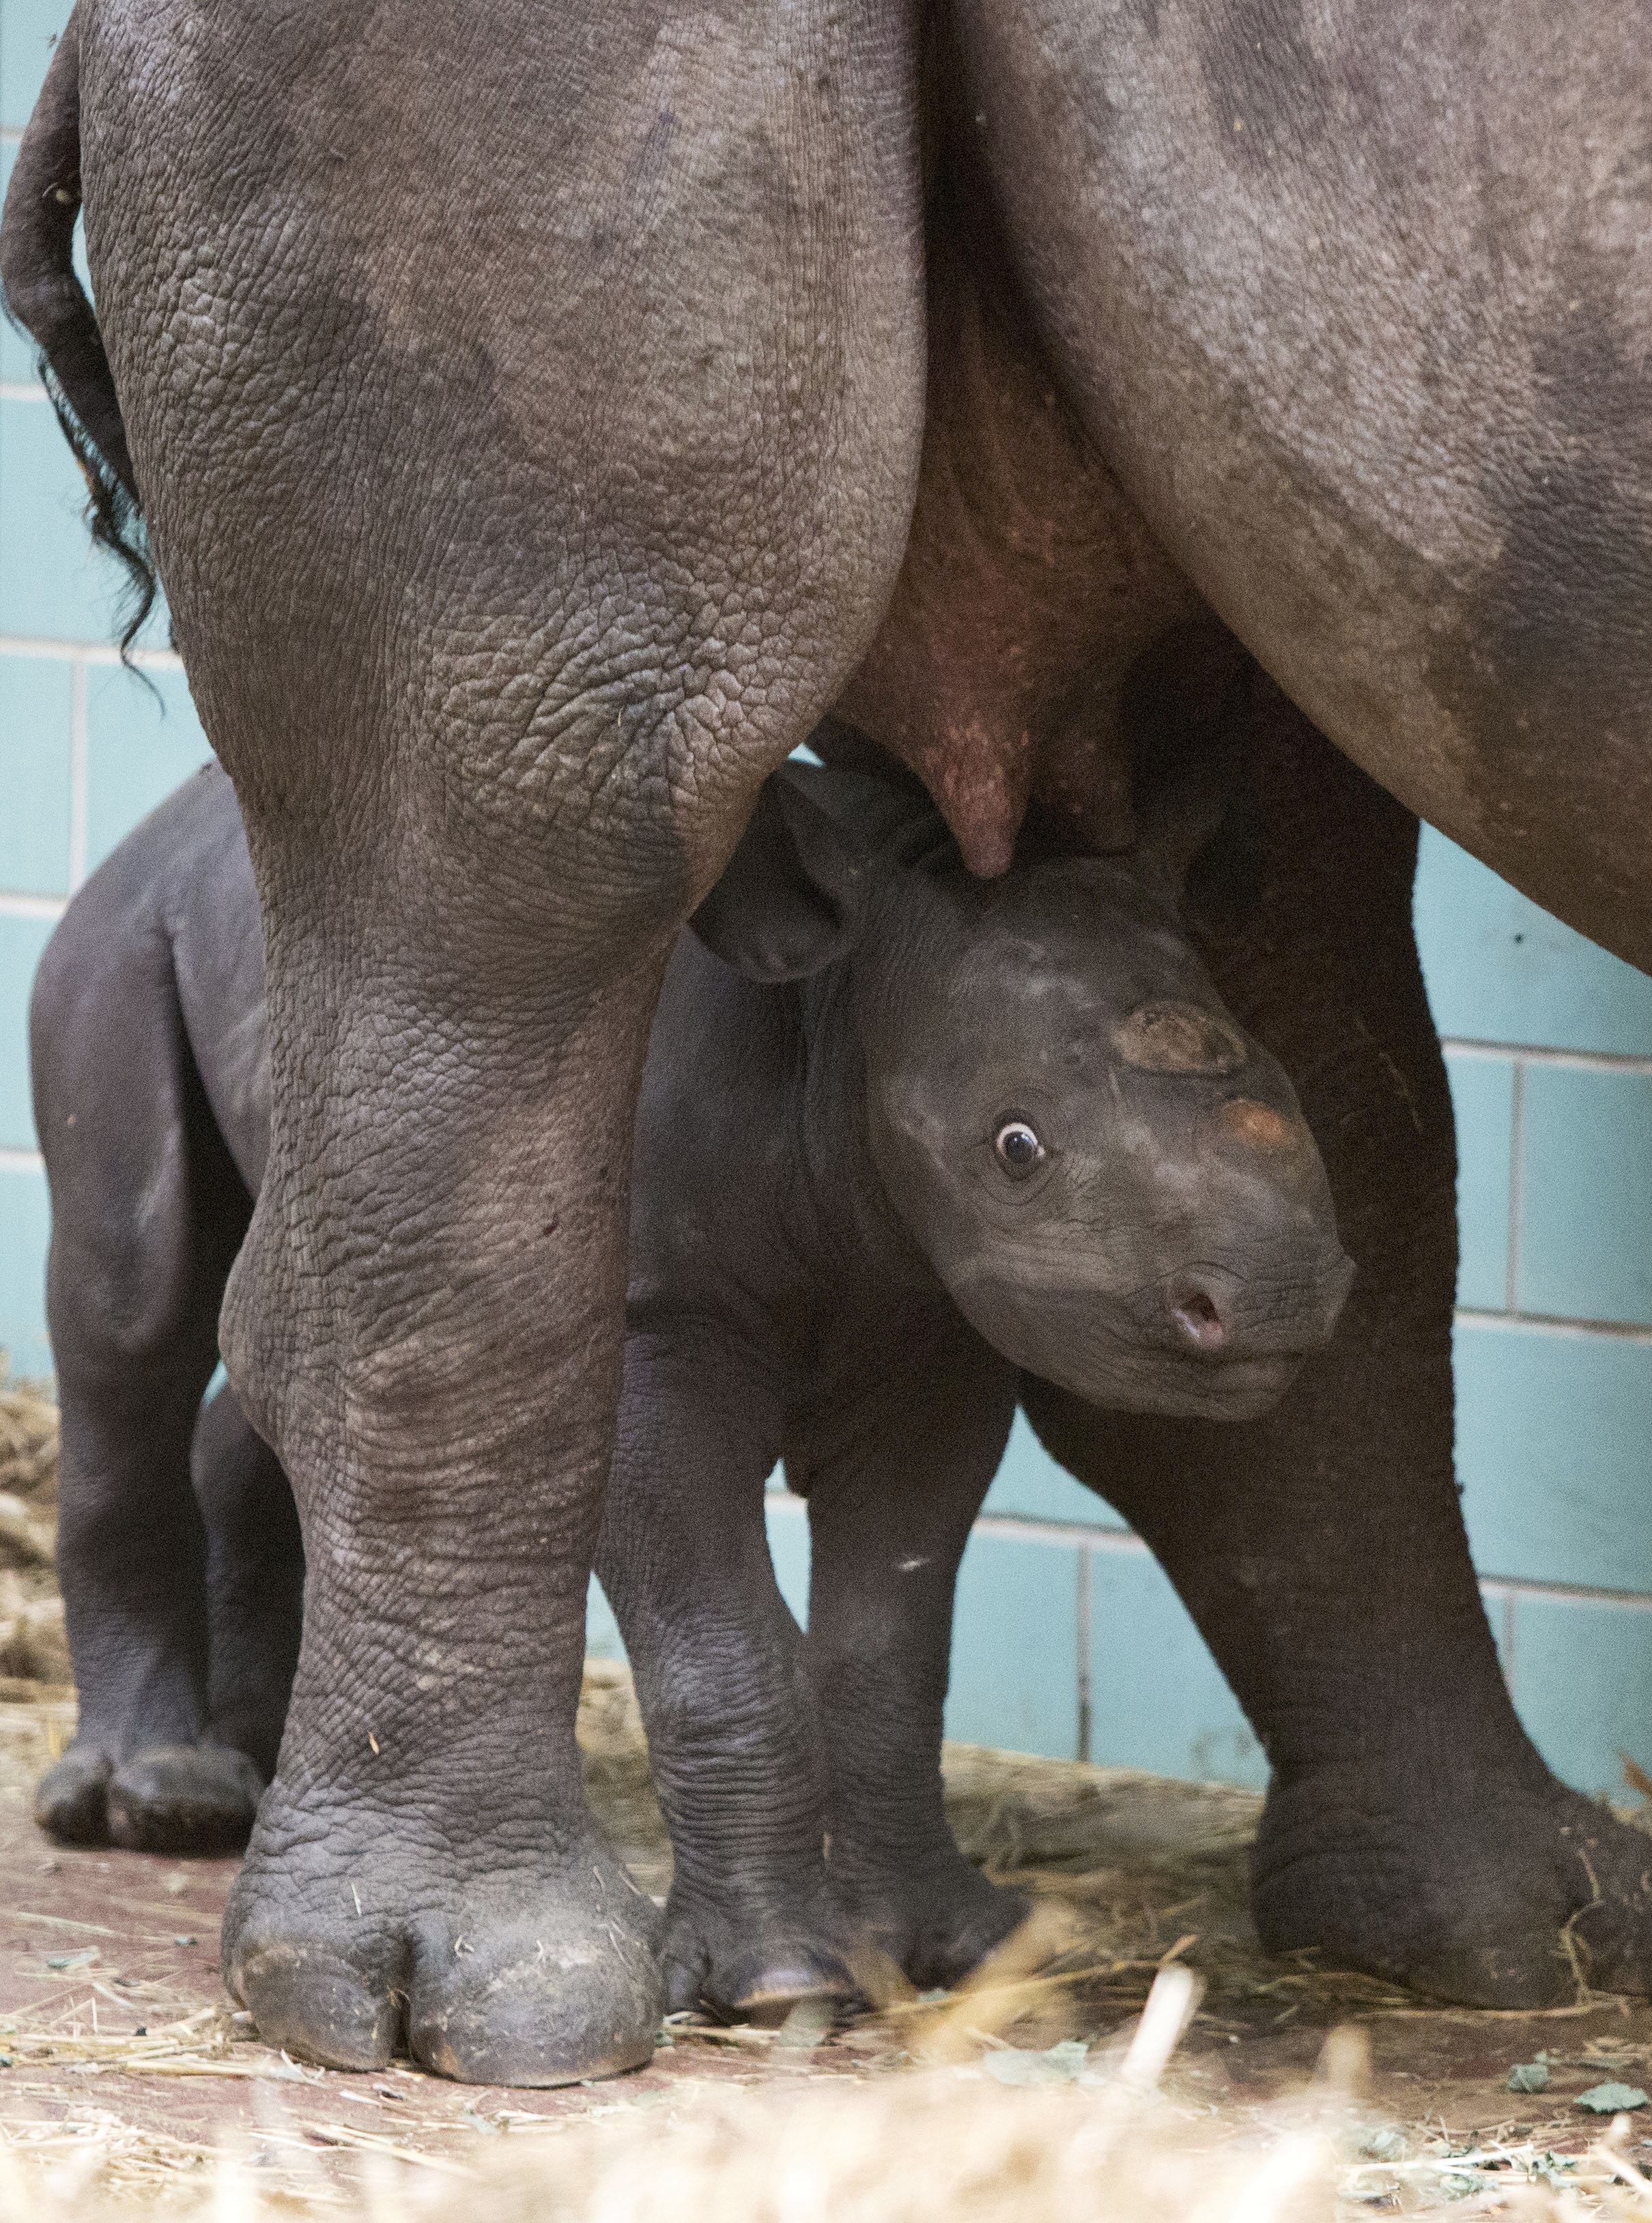 A 5-day-old, wide eyed black rhino takes in all of the new sights.